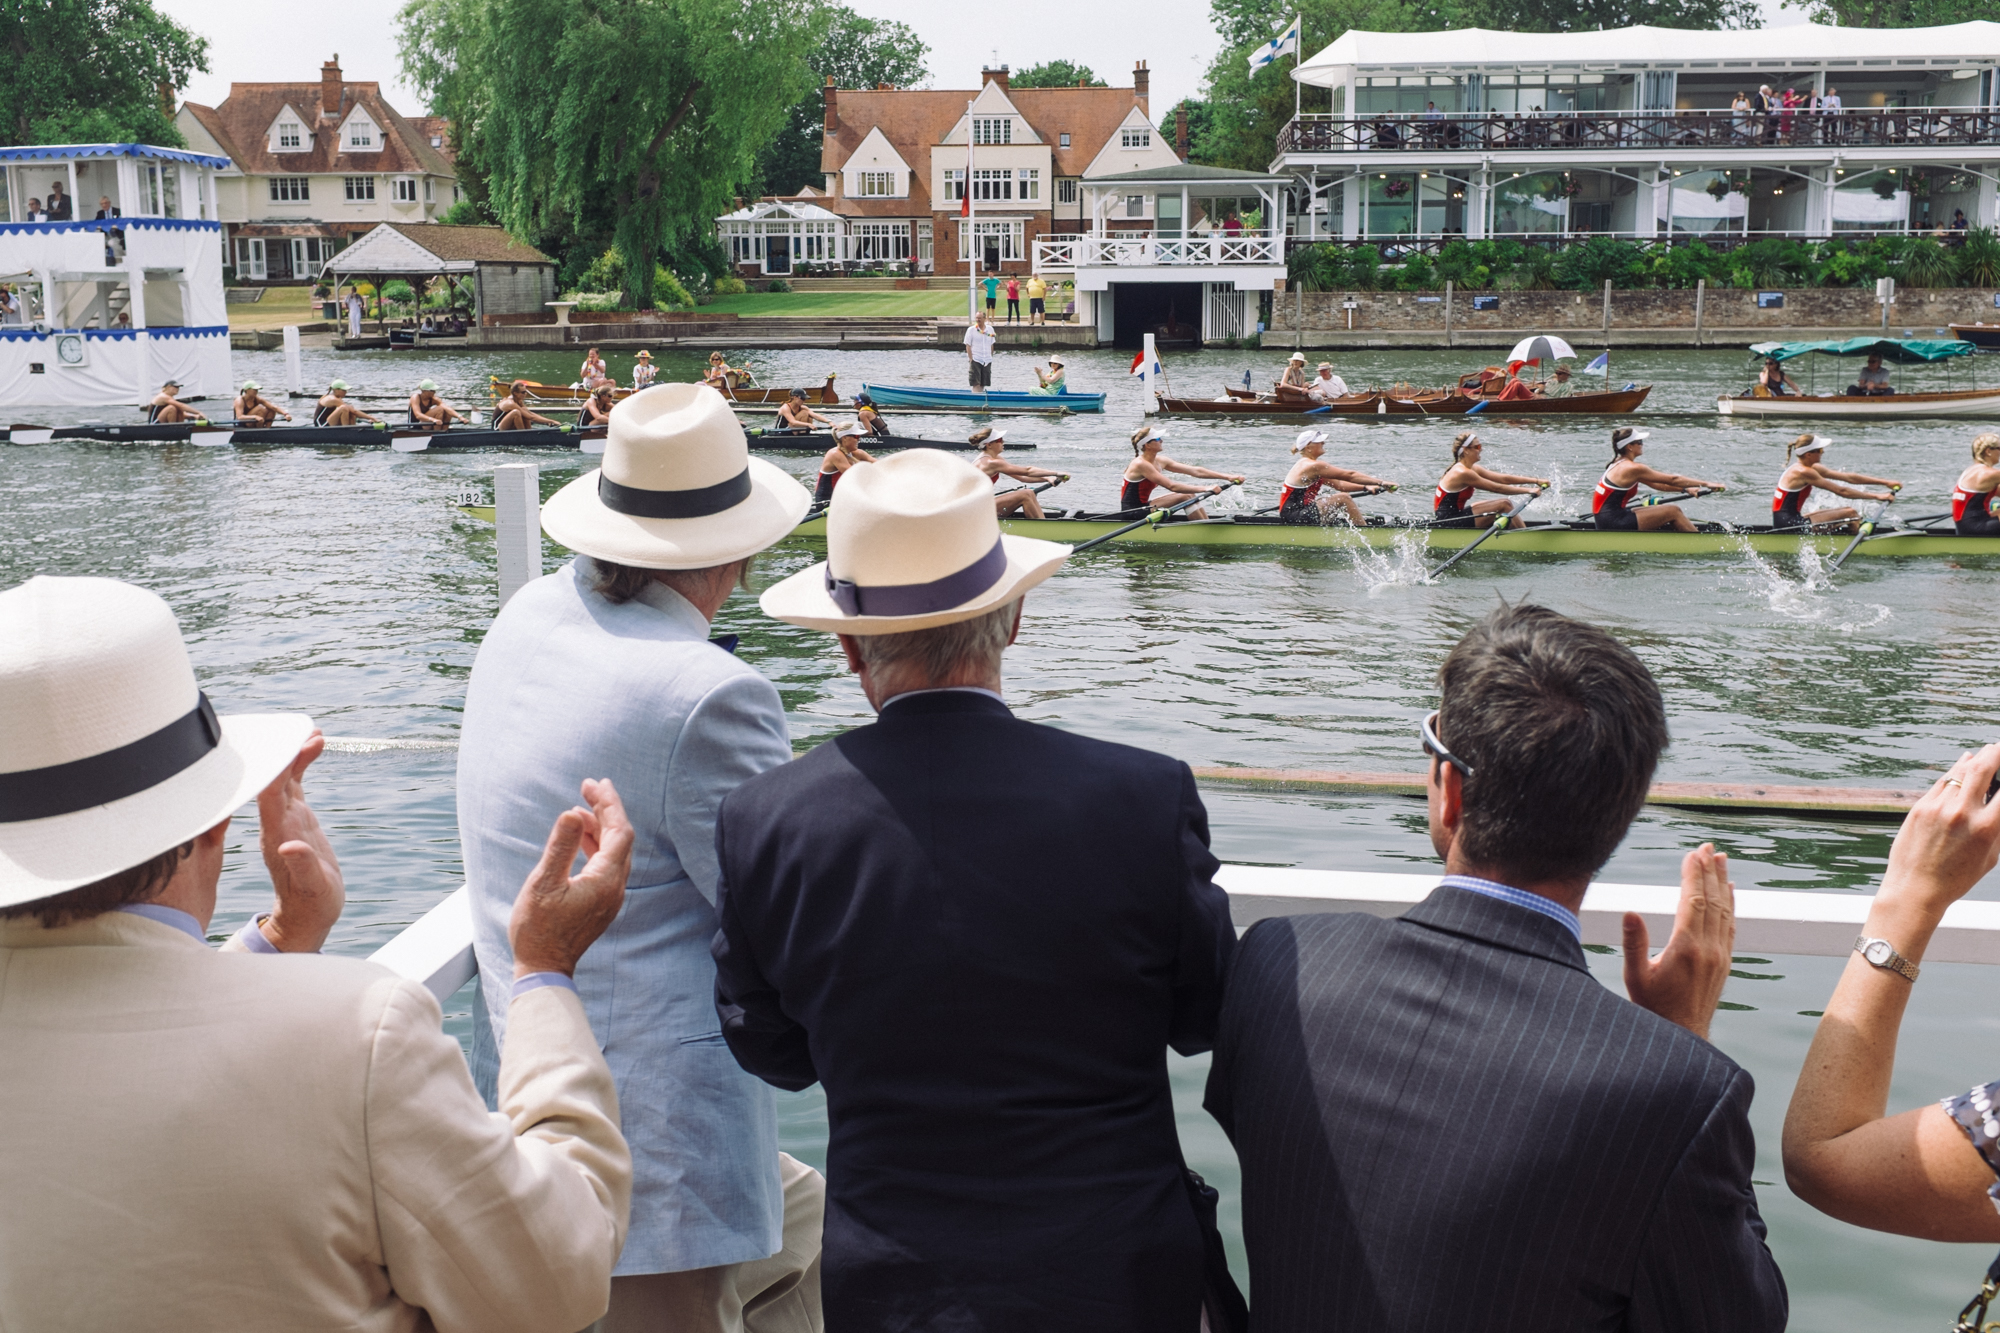 Crews race in the Remenham Challenge Cup –an event for women's eights. Woman were first allowed to compete at Henley Royal in 1993, although the number of events open to them today is still less than is available for men.